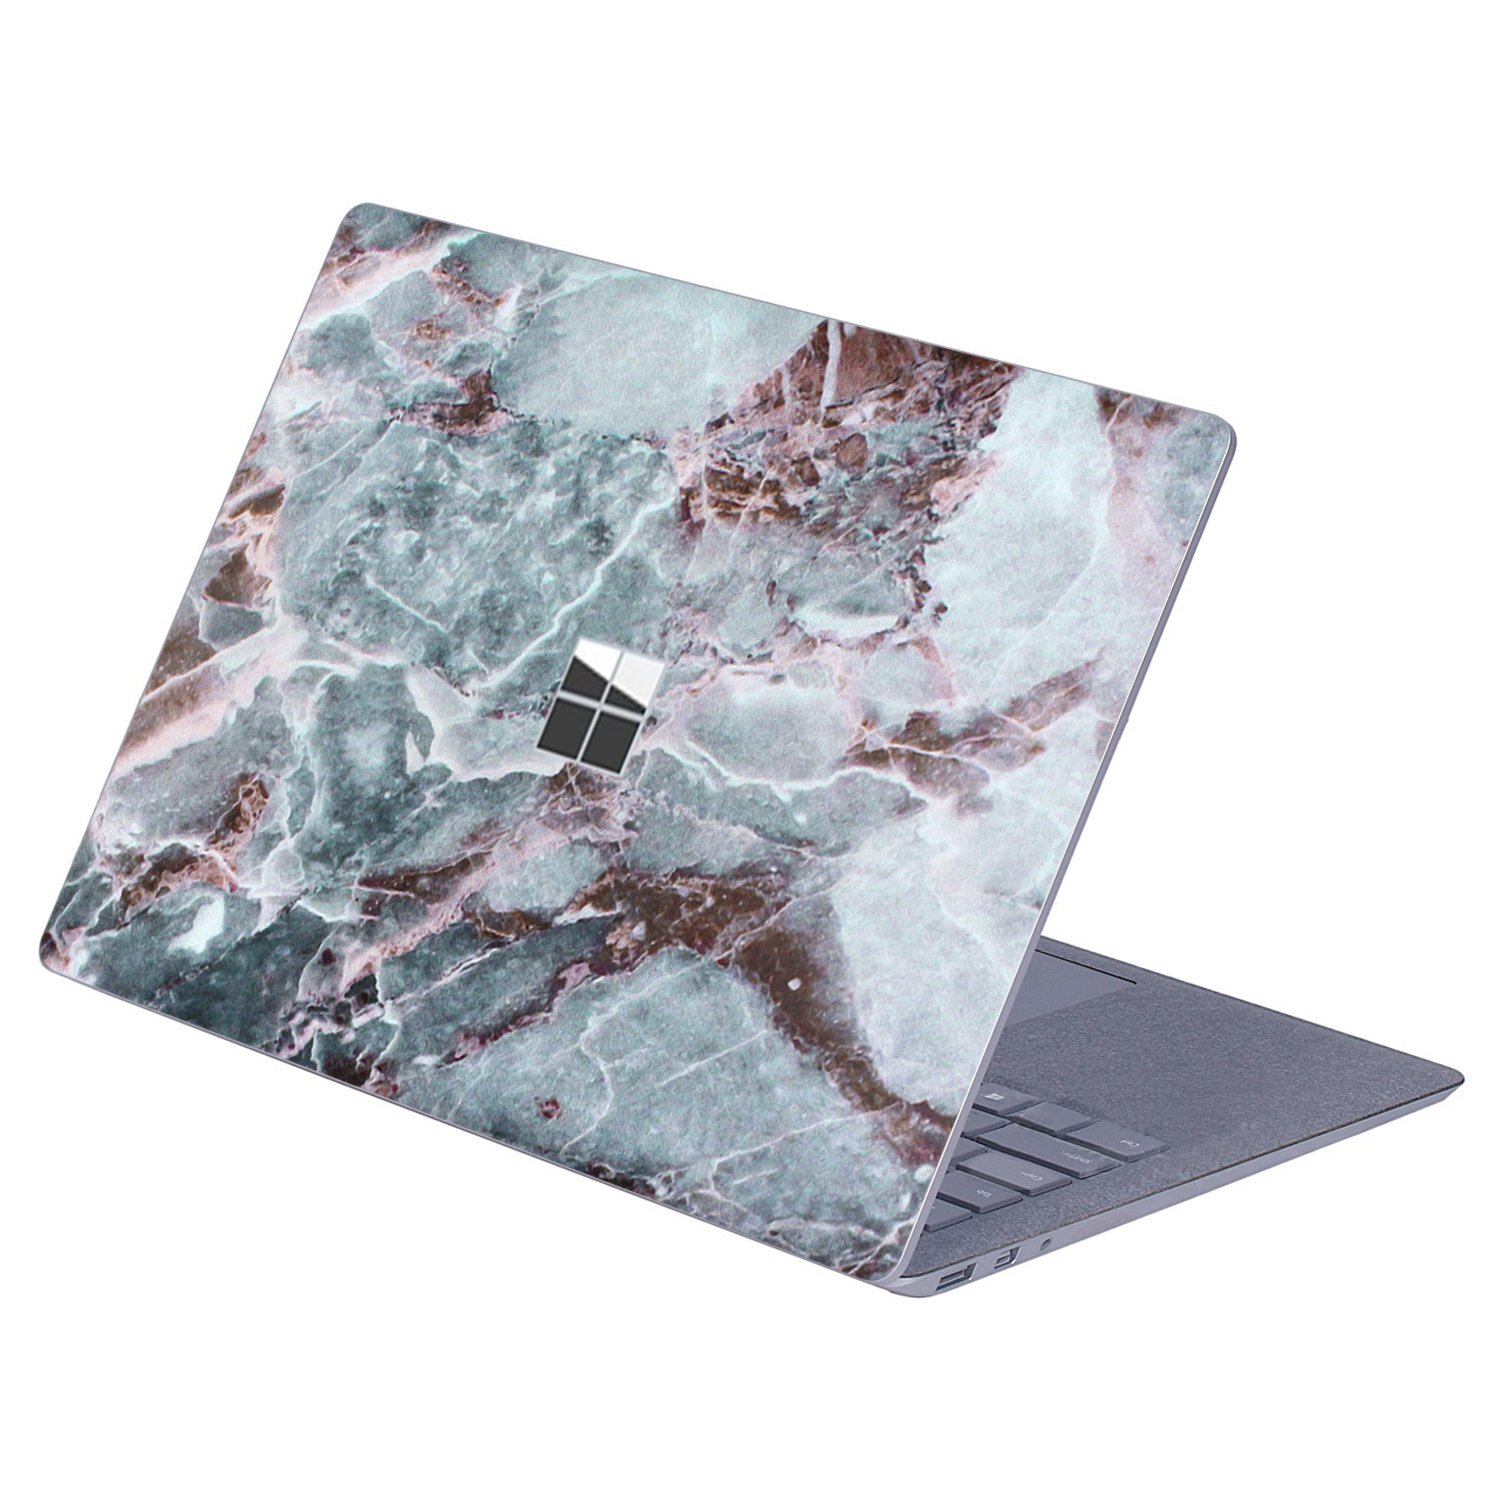 Masino Protective Decal Sticker Protector Cover Skin for 13.5 inch Microsoft Surface Laptop (For Surface Laptop, Decal - Marble White with Grey&Brown)